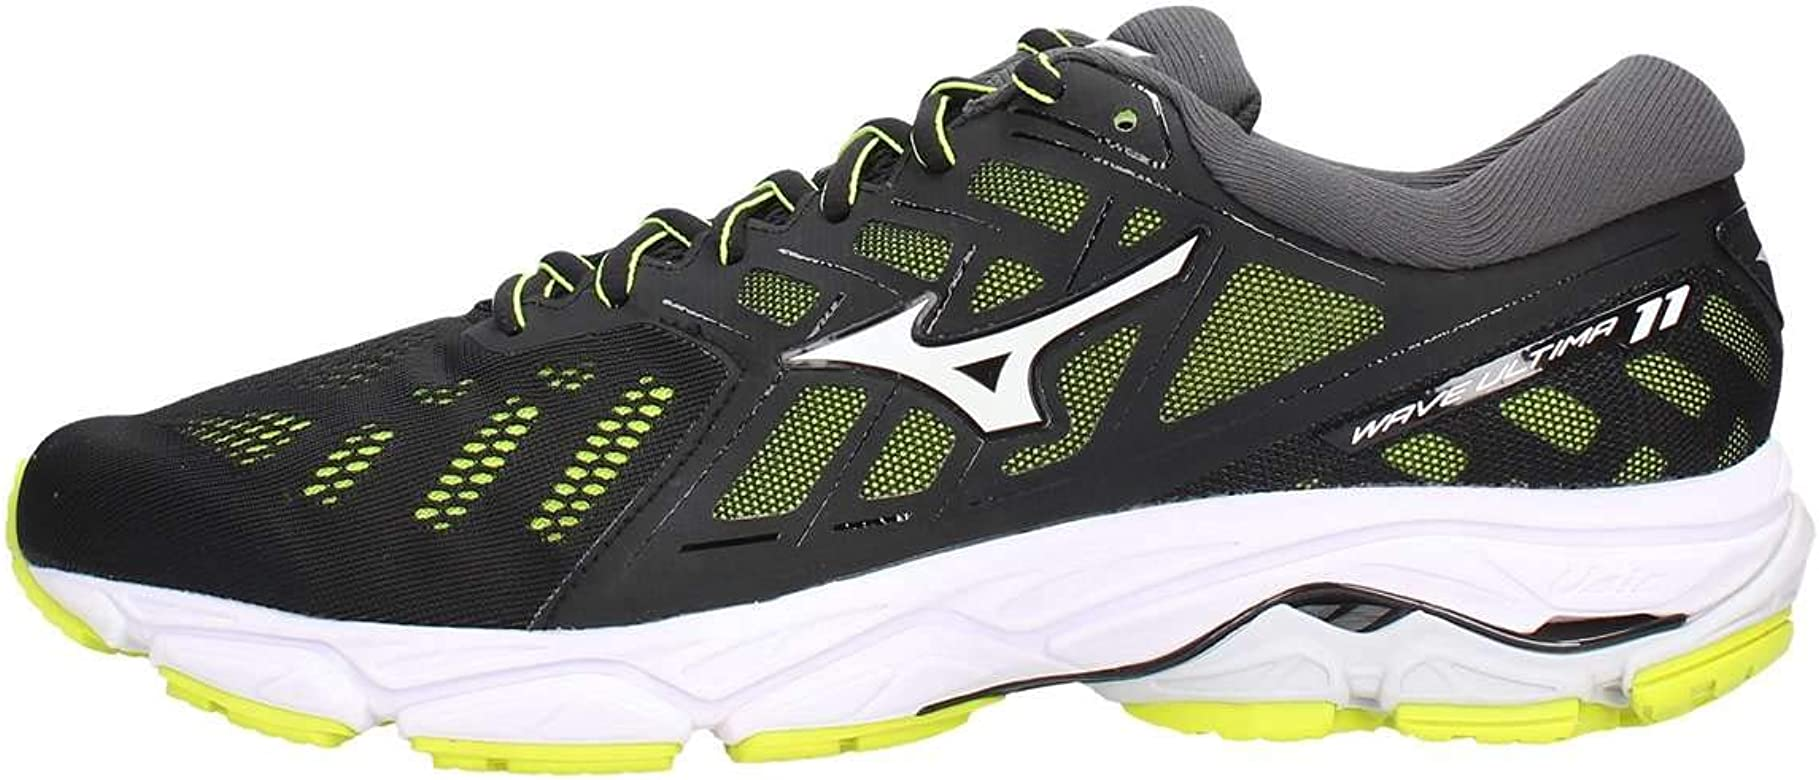 Mizuno Wave Ultima 11 Negro Amarillo J1GC1909 01: Amazon.es: Zapatos y complementos